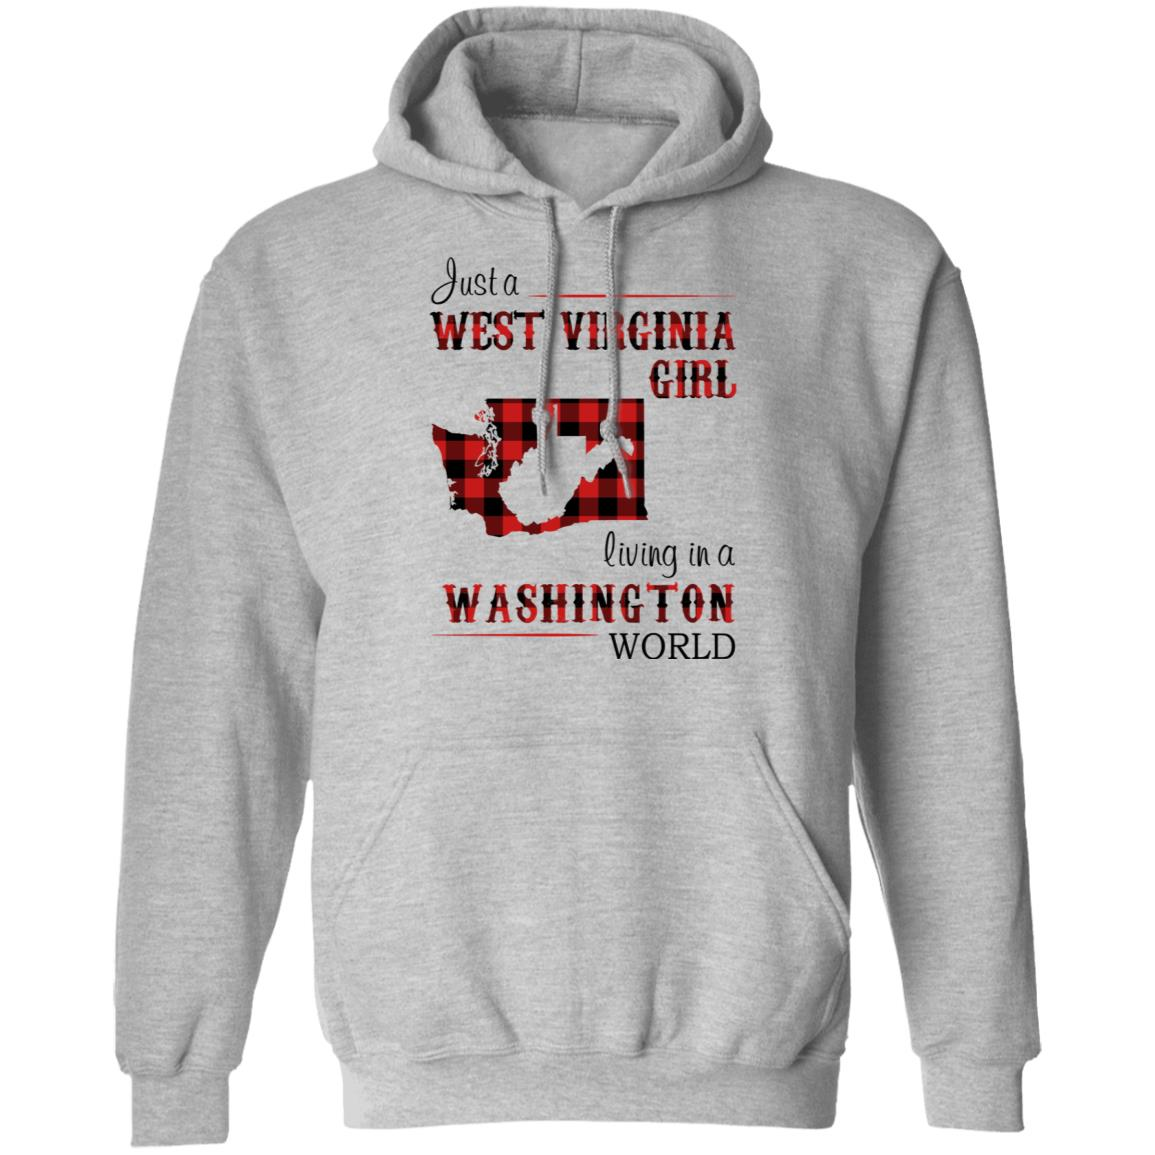 JUST A WEST VIRGINIA GIRL IN A WASHINGTON WORLD